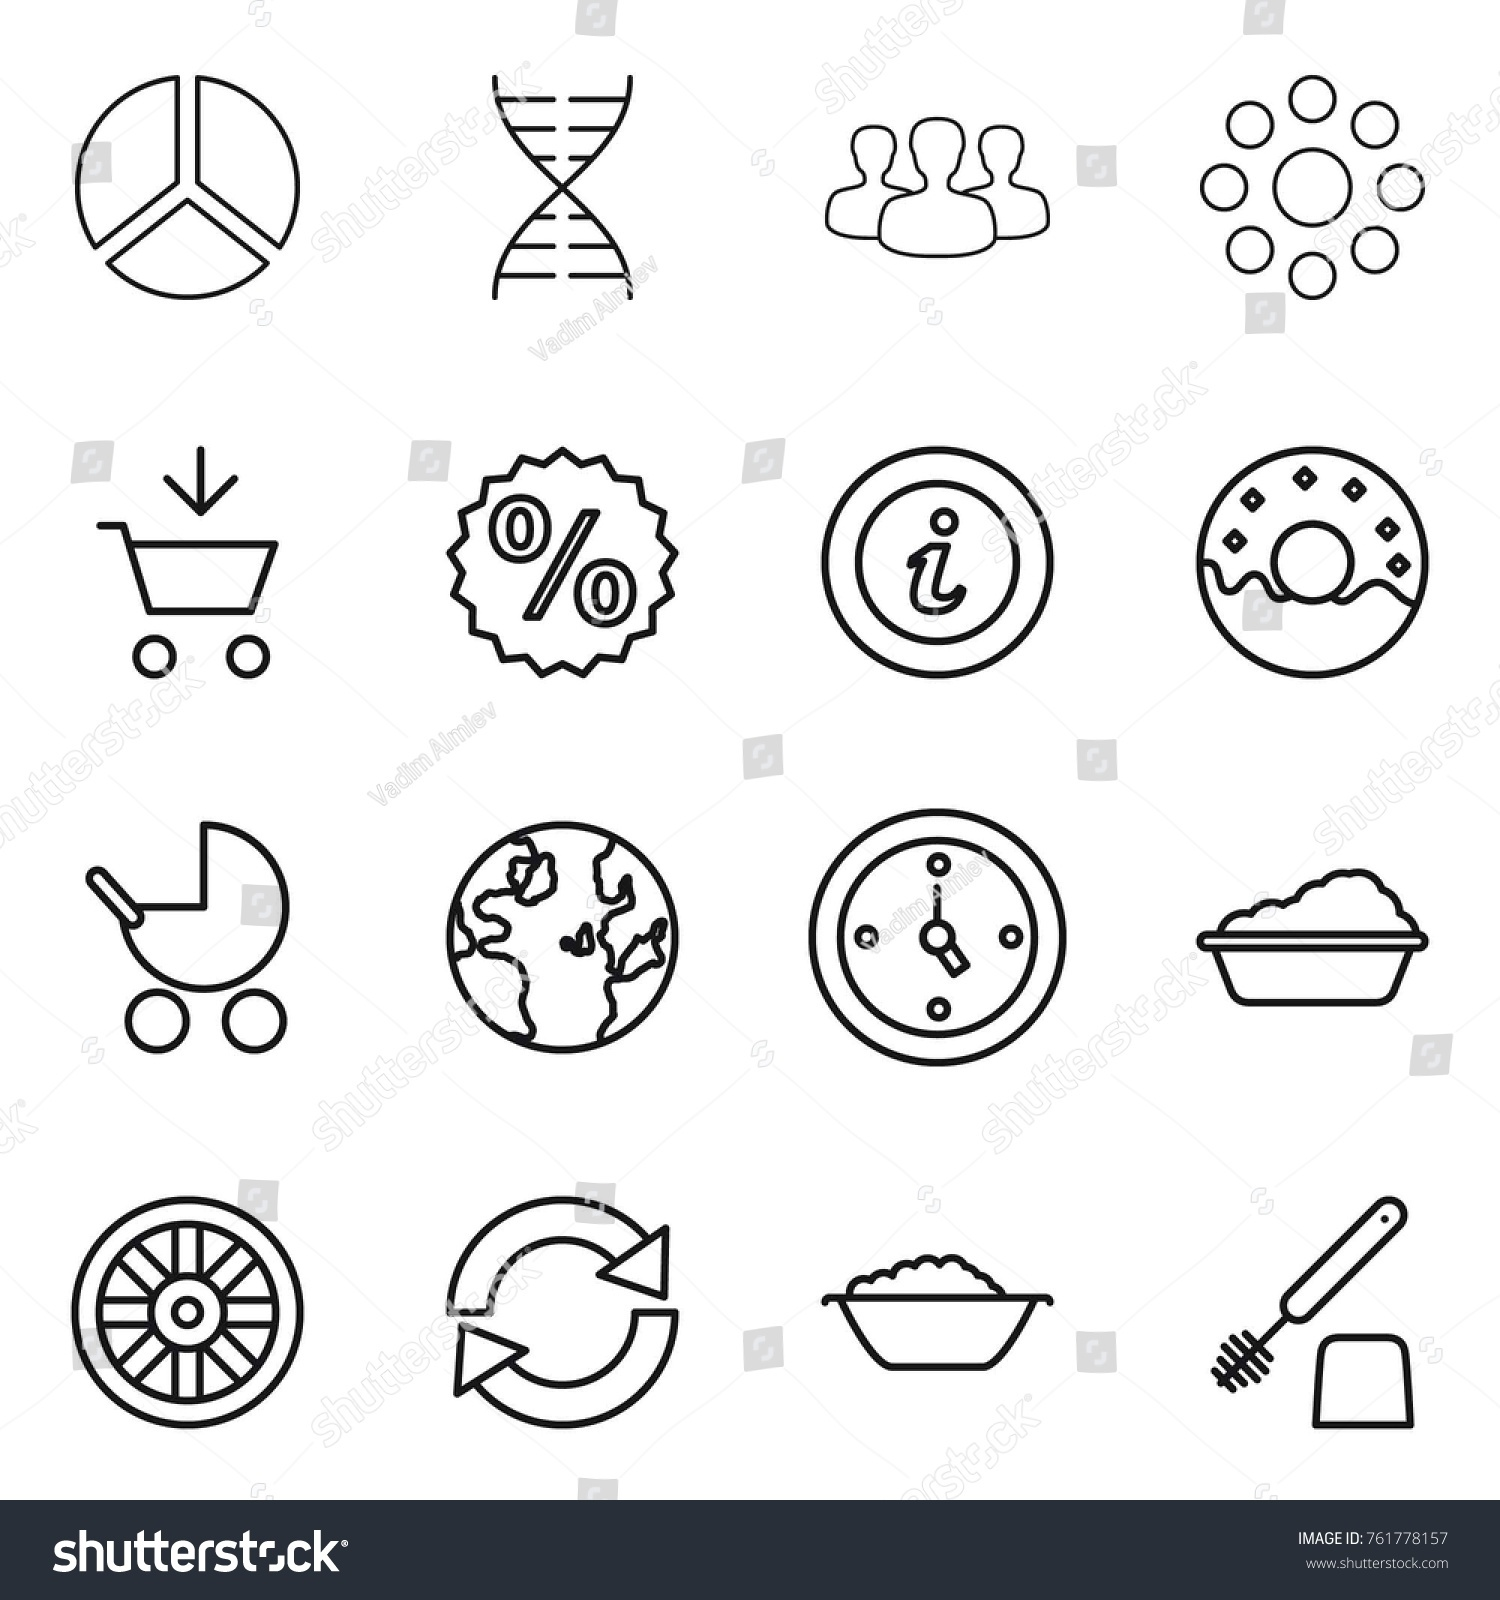 Thin line icon set diagram dna stock vector 761778157 shutterstock thin line icon set diagram dna group round around add to ccuart Choice Image